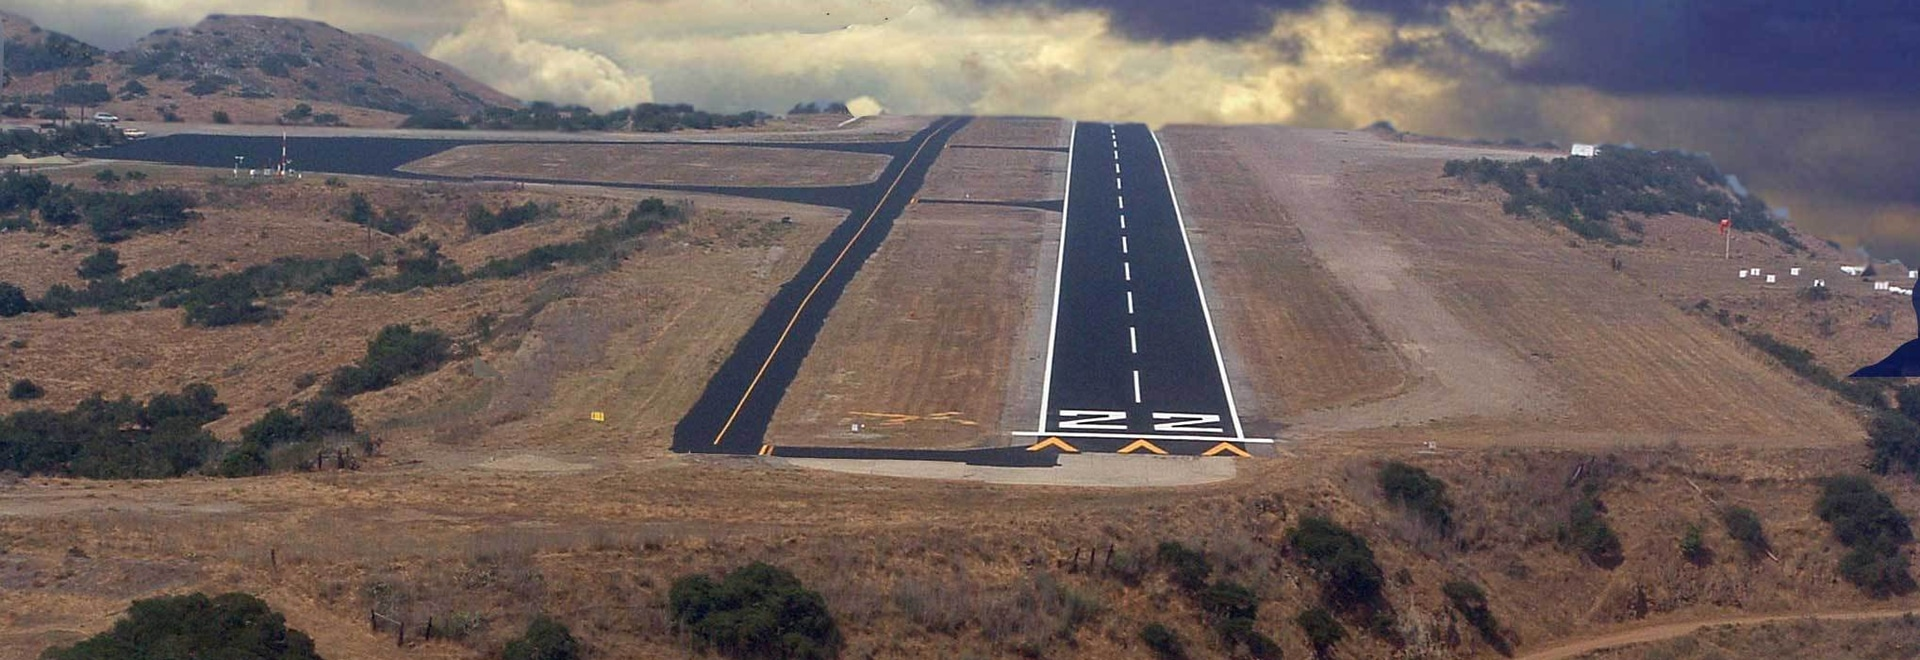 The U.S. Marines and Navy will replace the aging 3,000 foot asphalt runway at Catalina Island's Airport in the Sky with a concrete strip, as part of a training exercise. Aimed at giving the troops ...